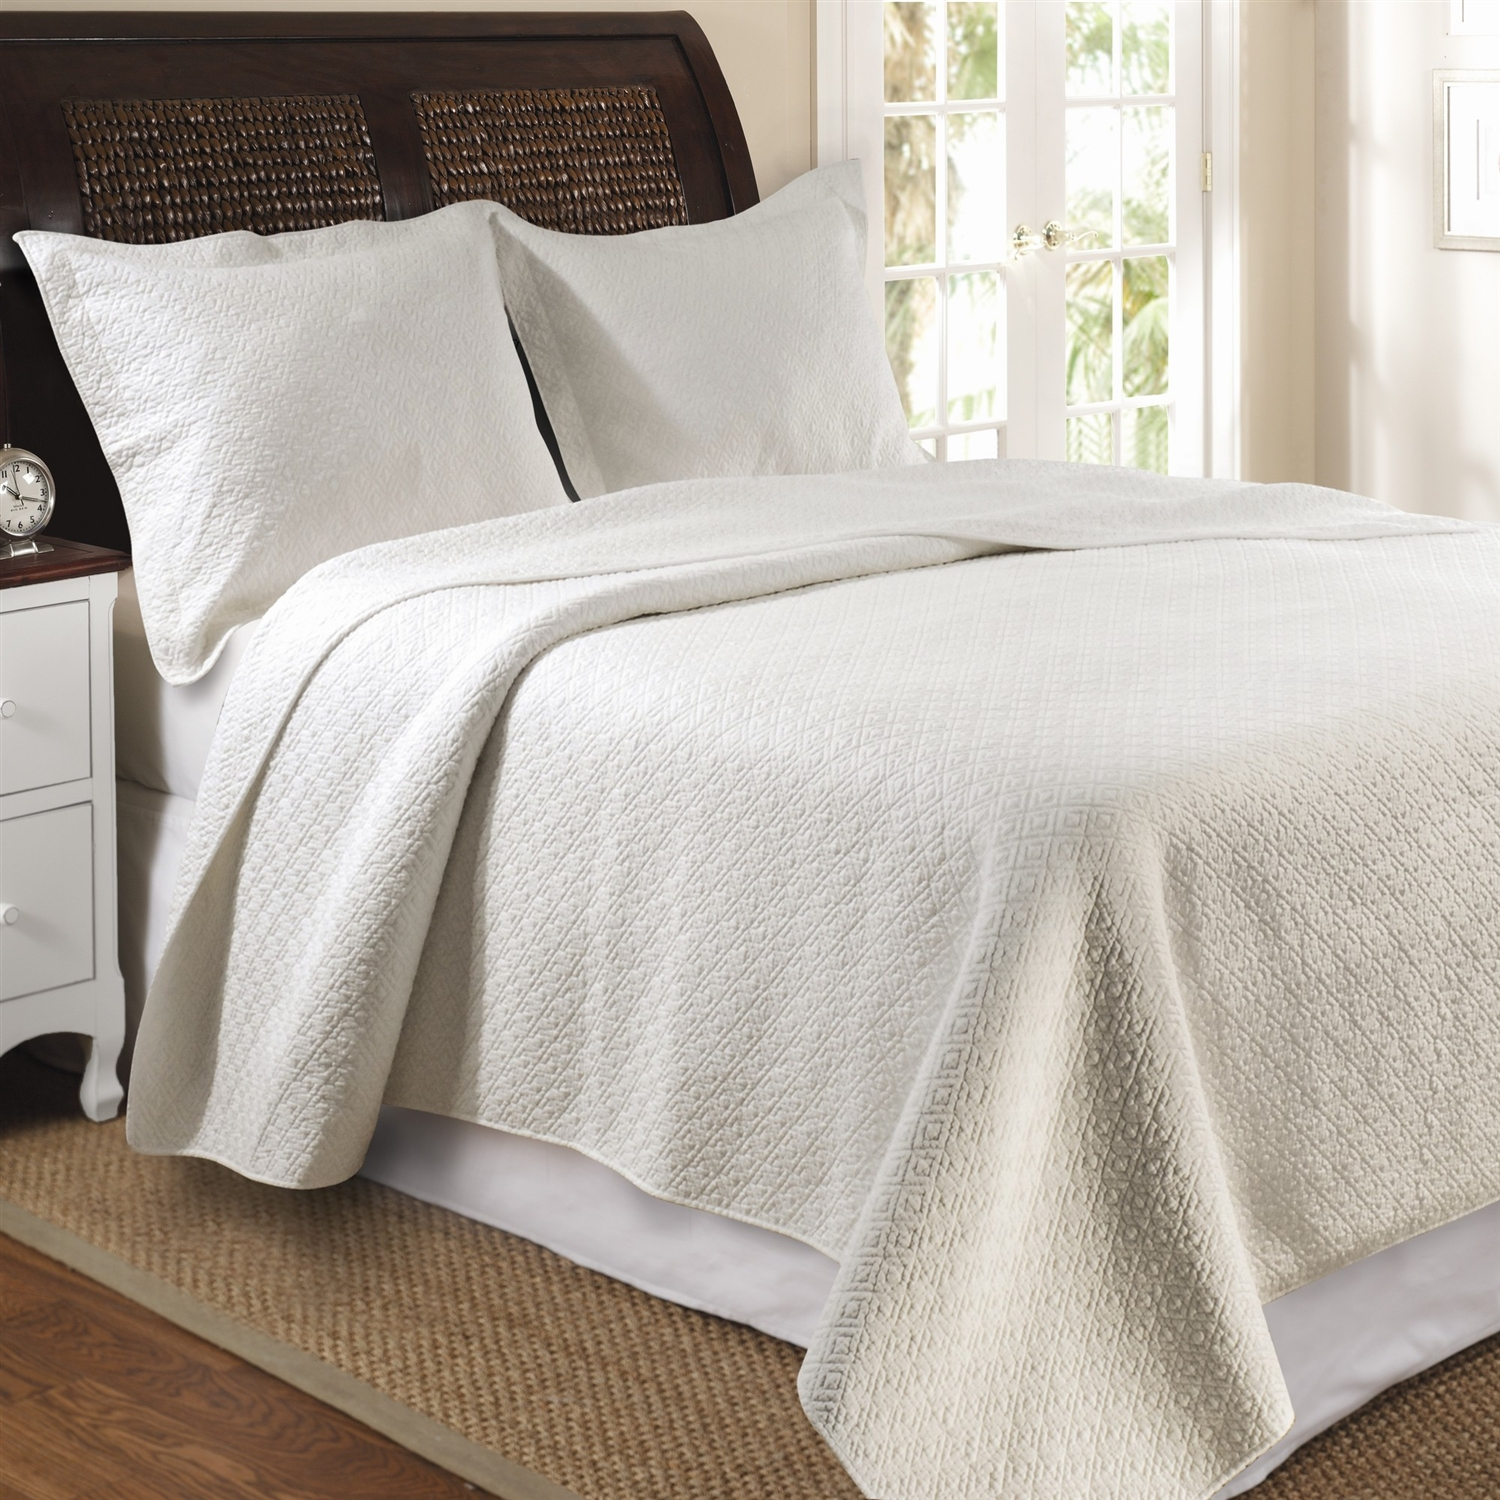 Full / Queen 100% Cotton Quilt Set in Ivory with Diamond Pattern: GVQFQ75015 : Update your bedroom with this modern yet sophisticated Full / Queen 100% Cotton Quilt Set in Ivory with Diamond Pattern. It enhances the durability and the softness in a light, airy feel. Intricately stitching in concentric diamond pattern; Oversized for better mattress coverage; Machine washable; Twin set includes 1 quilt and 1 standard sham; Full / Queen and King set includes 1 quilt and 2 standard shams; Product Type: Quilt/Coverlet set; Sham Material: Cotton; Reverse Side Material: Cotton; Pattern: Solid.